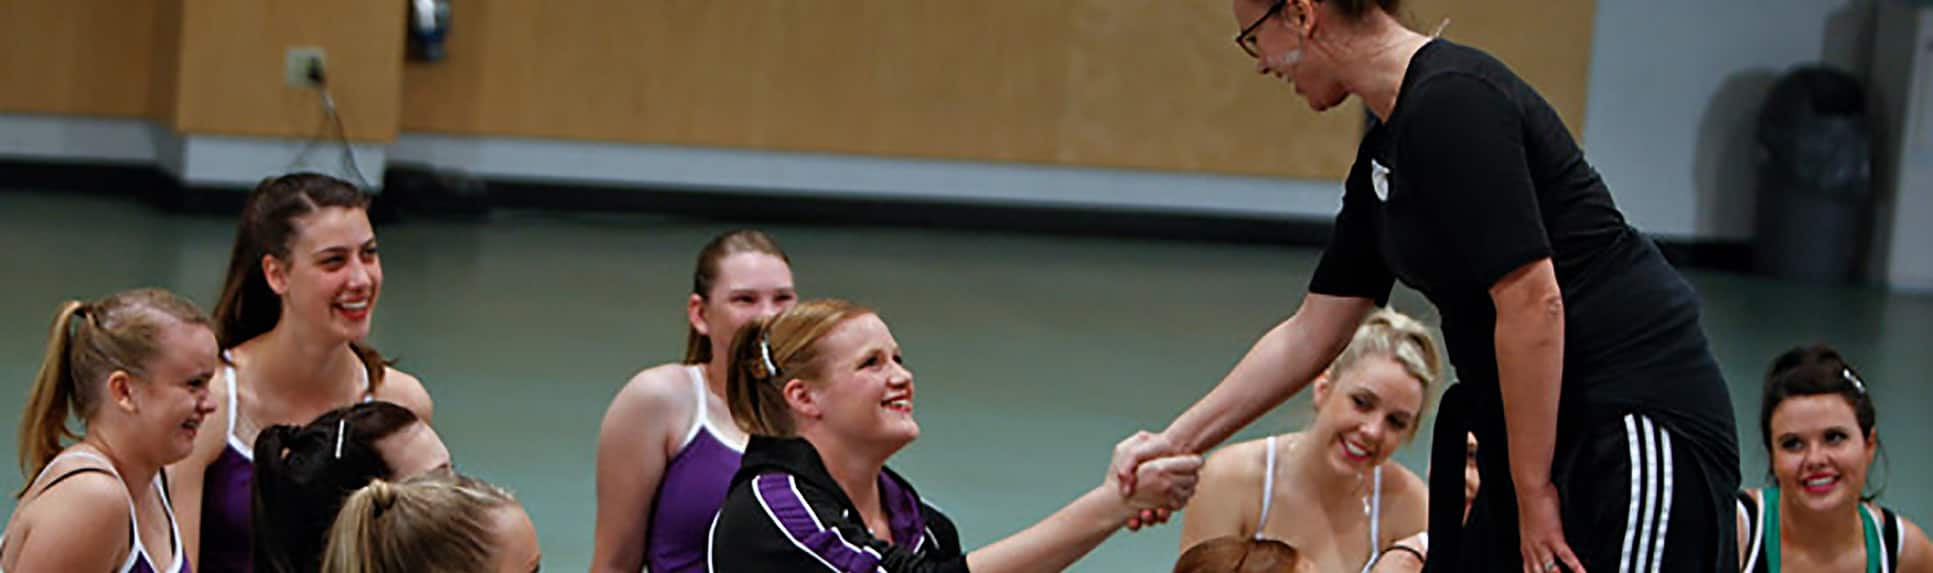 An adult shaking hands with a young woman in a room of smiling  dancers wearing uniforms and jazz shoes